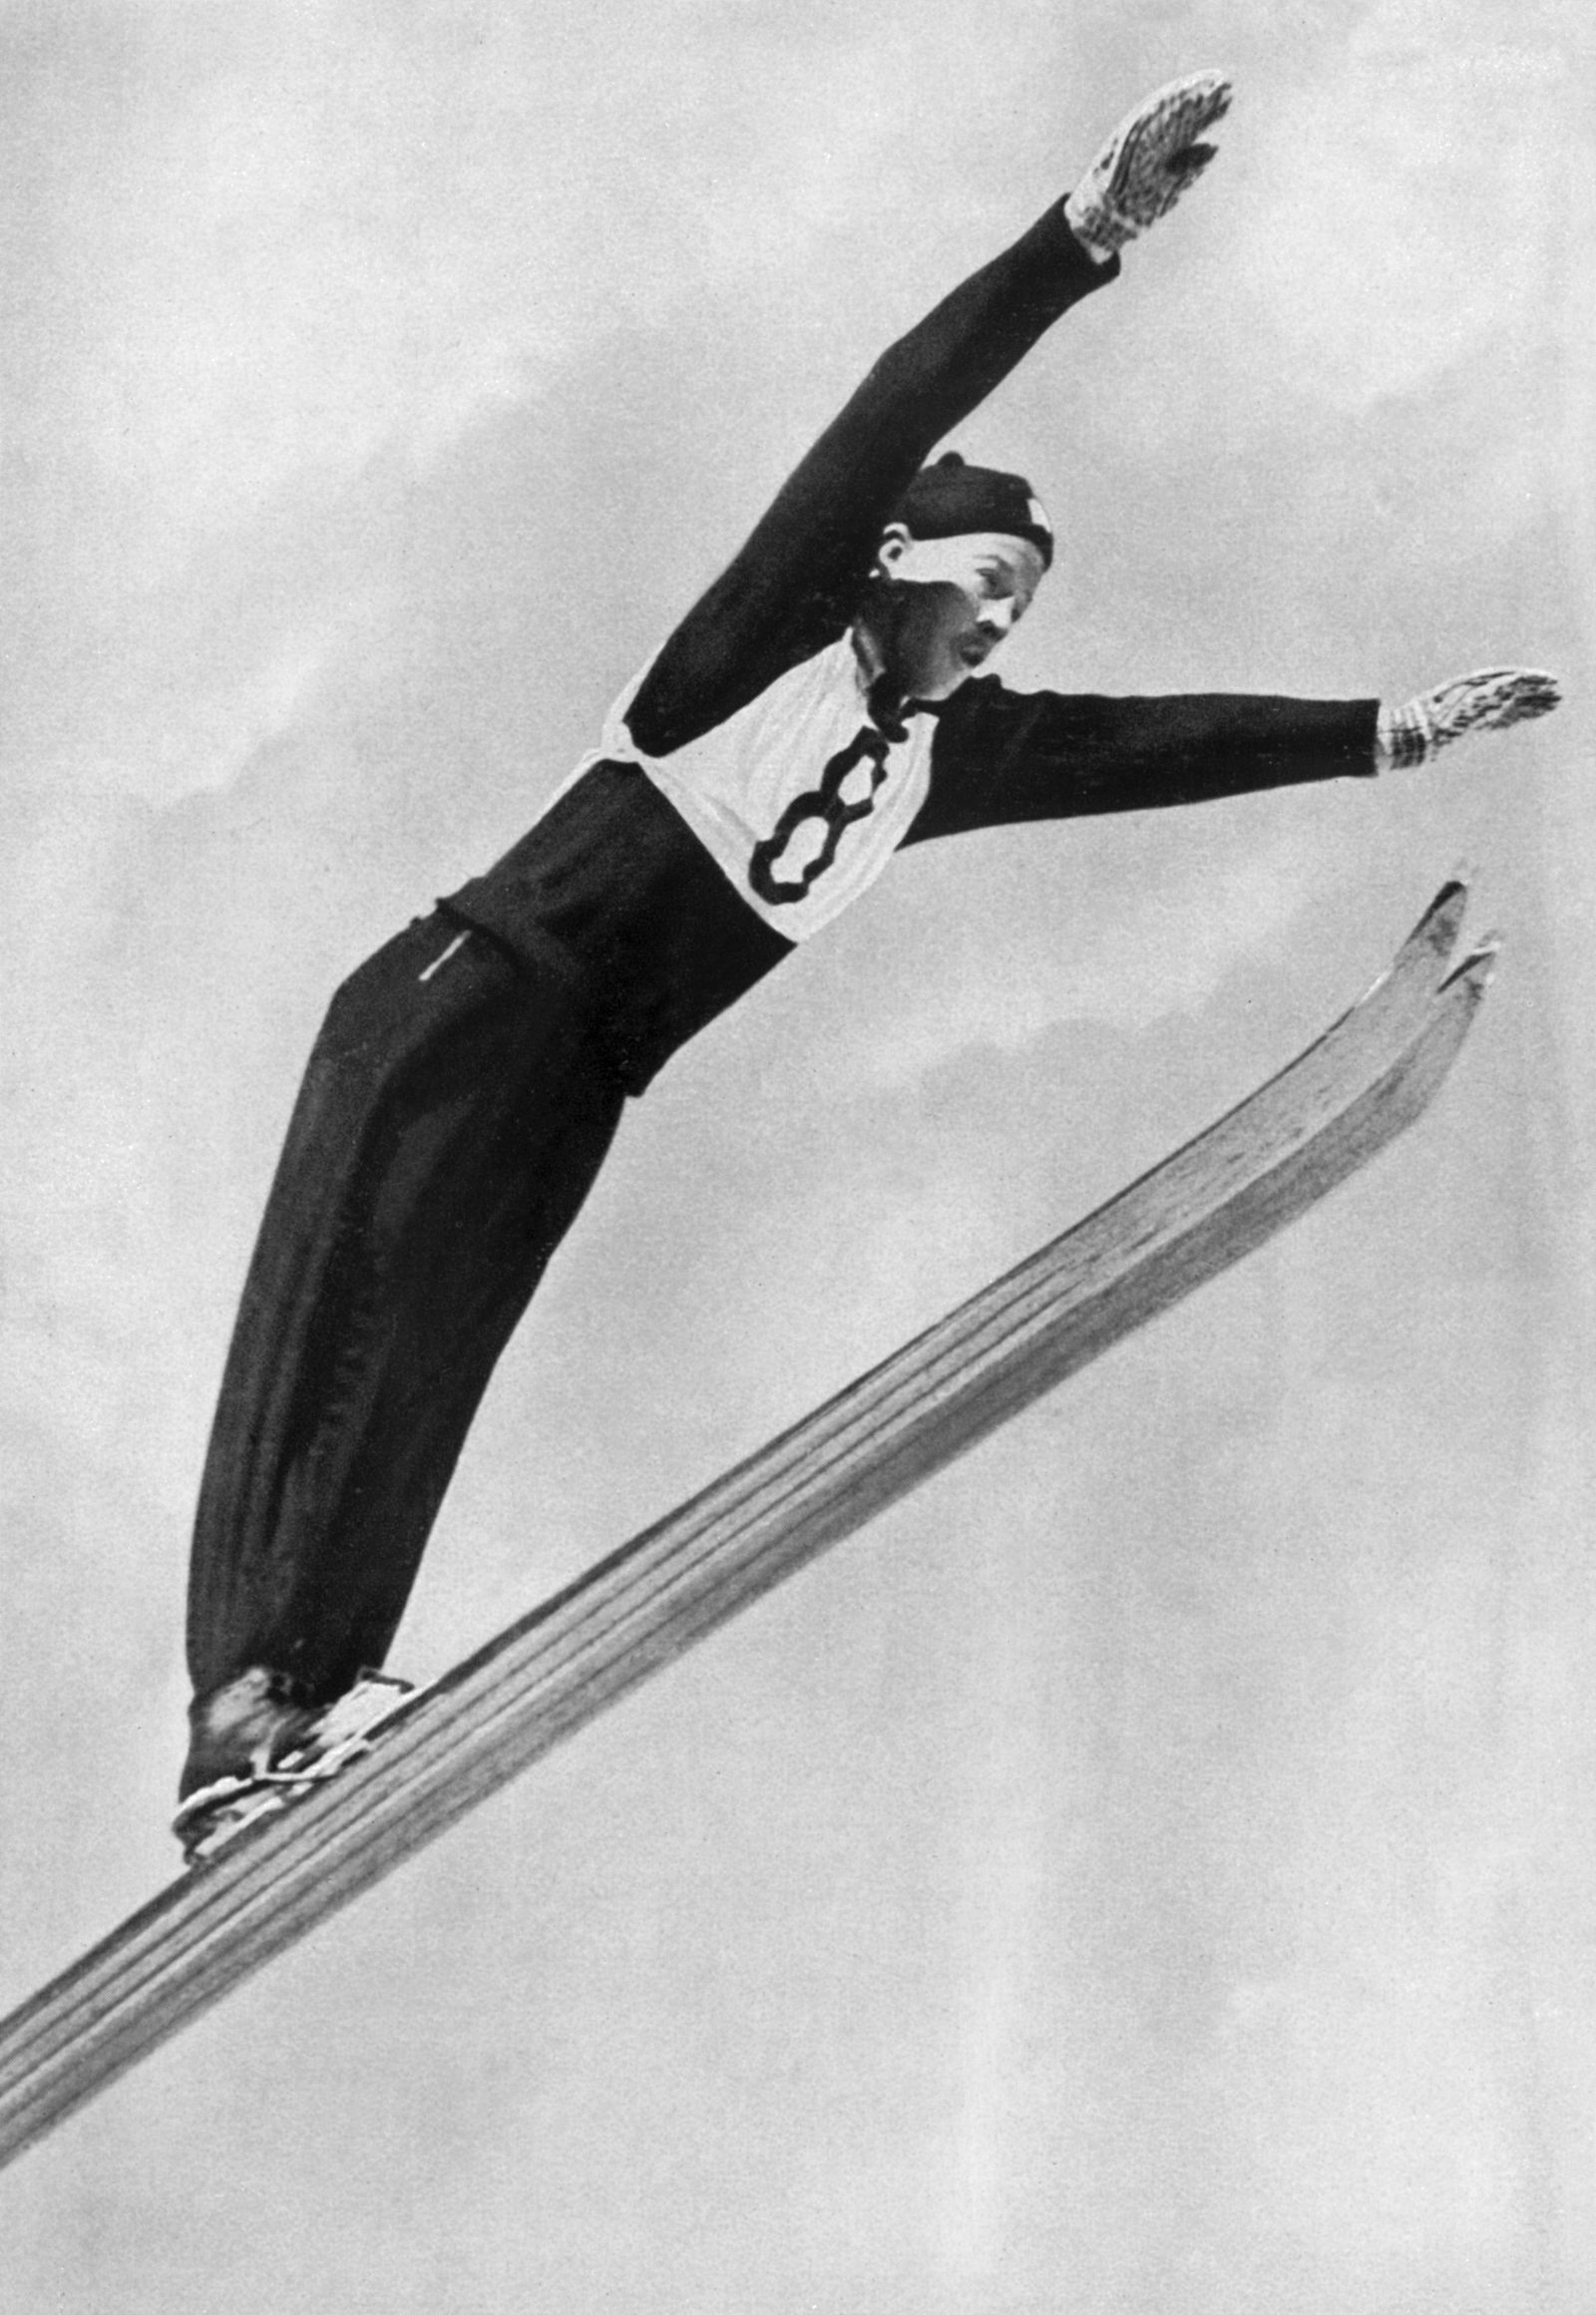 1936 Winter Olympic Games Garmisch - Partenkirchen, Germany Birger Ruud, Norway who won the gold medal for the K90 indi